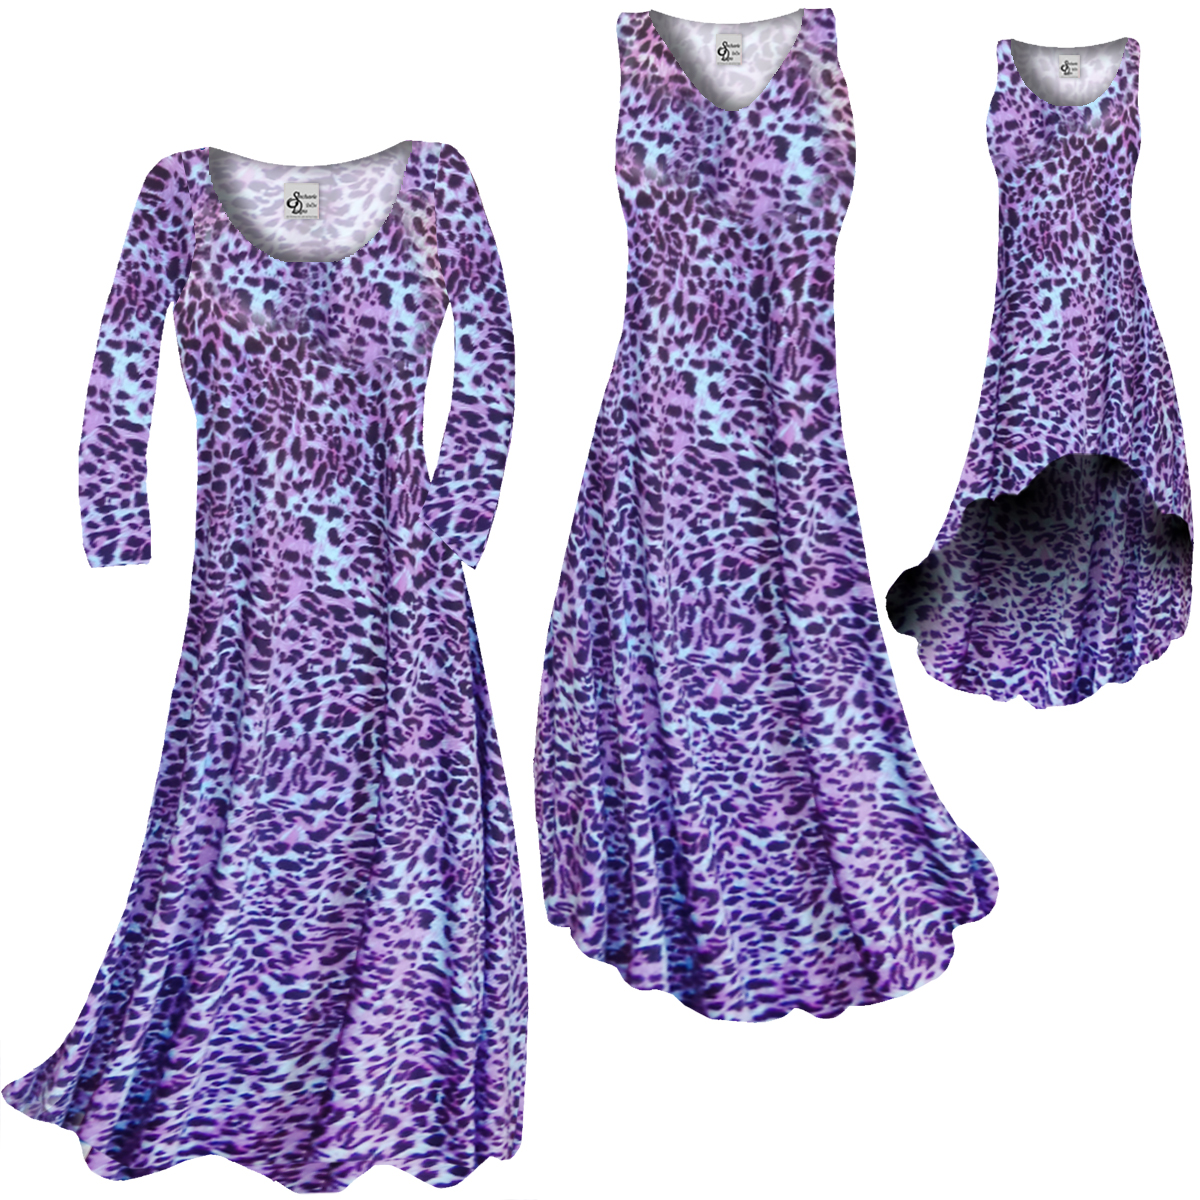 1356f0b8ae09f FINAL CLEARANCE SALE! Bright Purple   Light Blue Leopard Spots Slinky Print  Plus Size   Supersize Standard or Cascading A-Line or Princess Cut Dresses  0x 6x